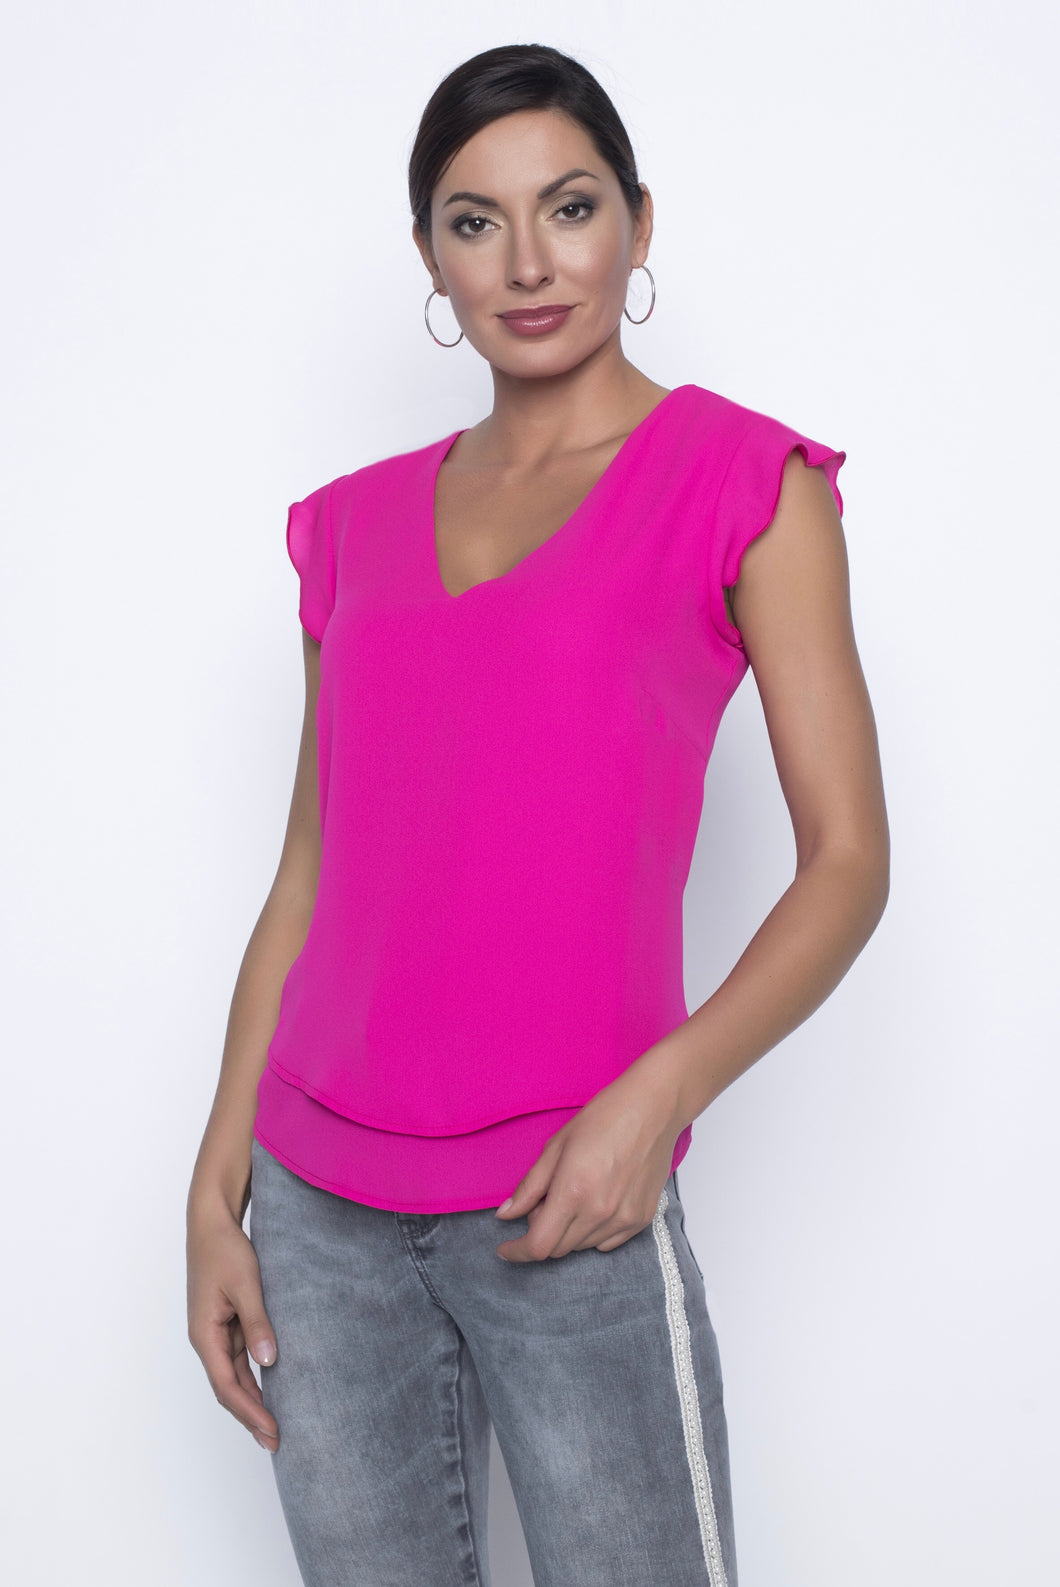 candy pink chiffon top with shoulder